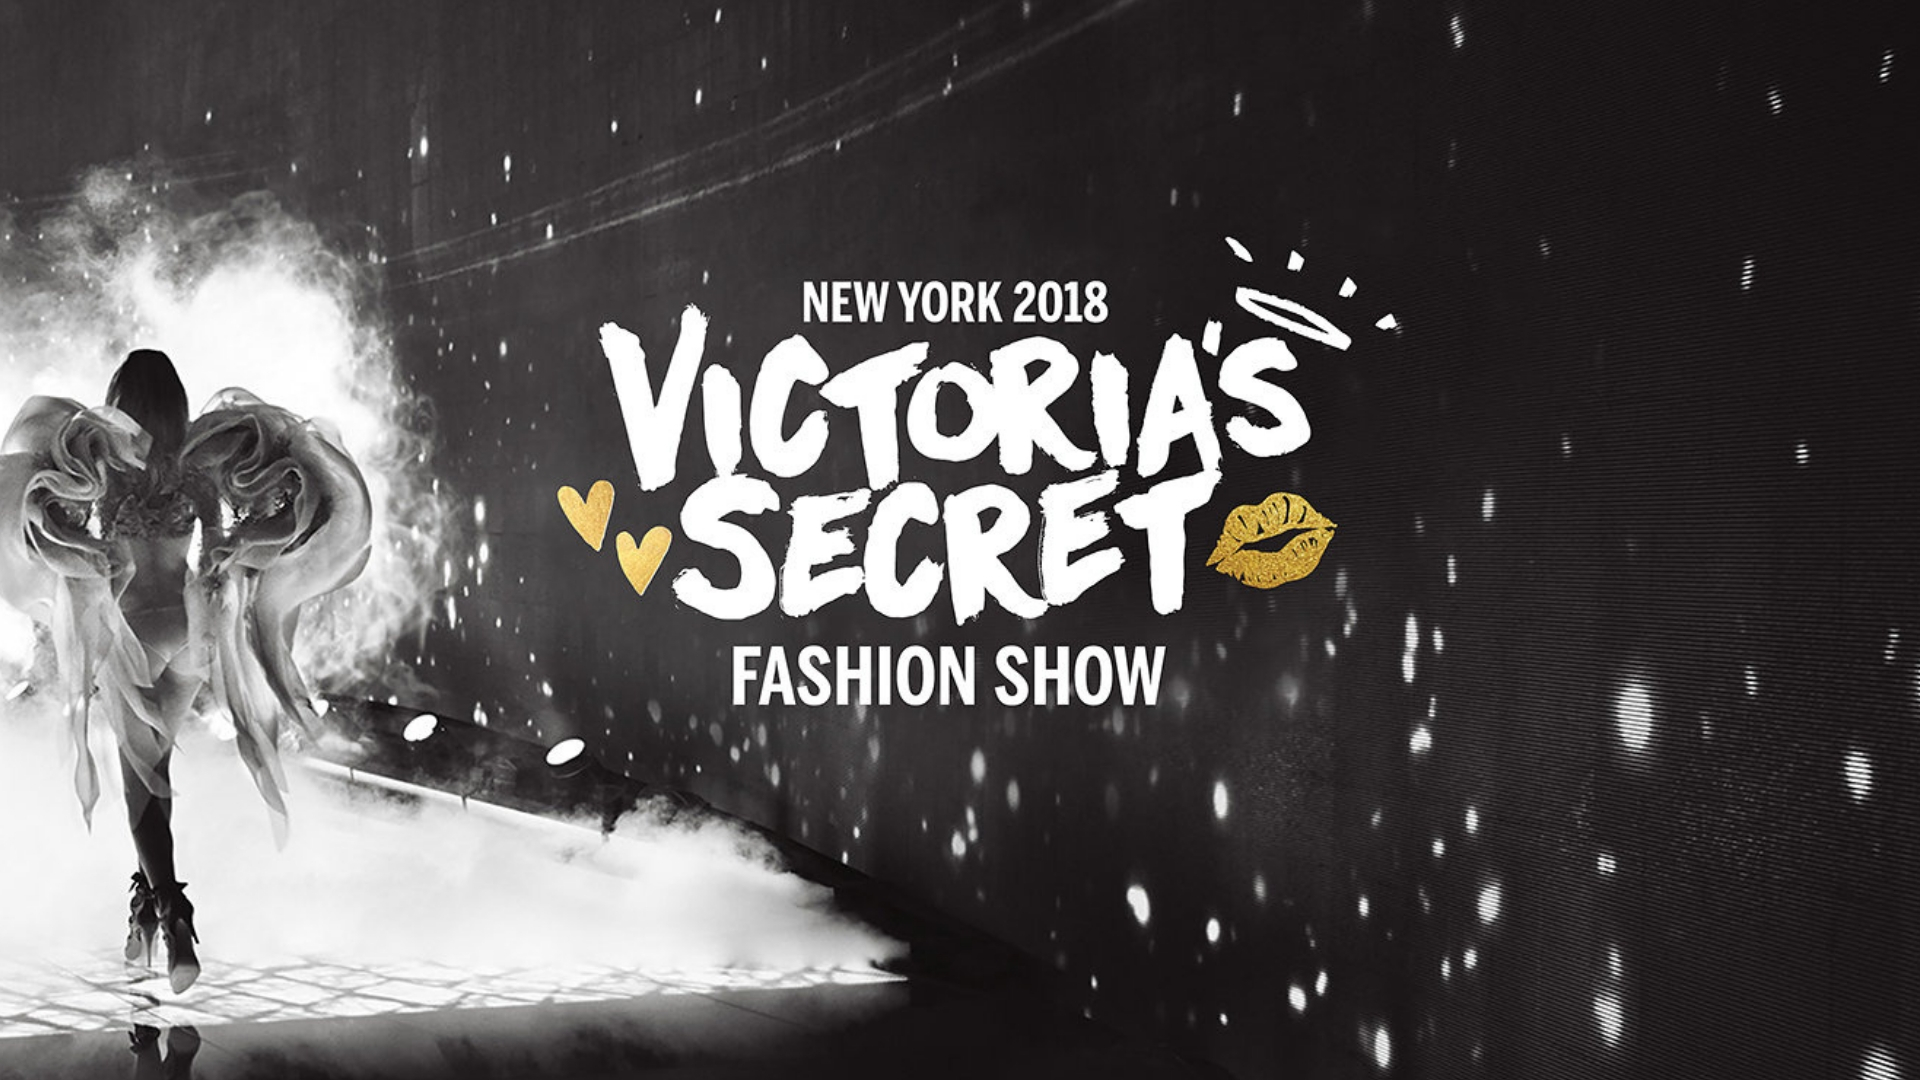 Дизайн без назви 9 - Victoria`s Secret Fashion Show 2018